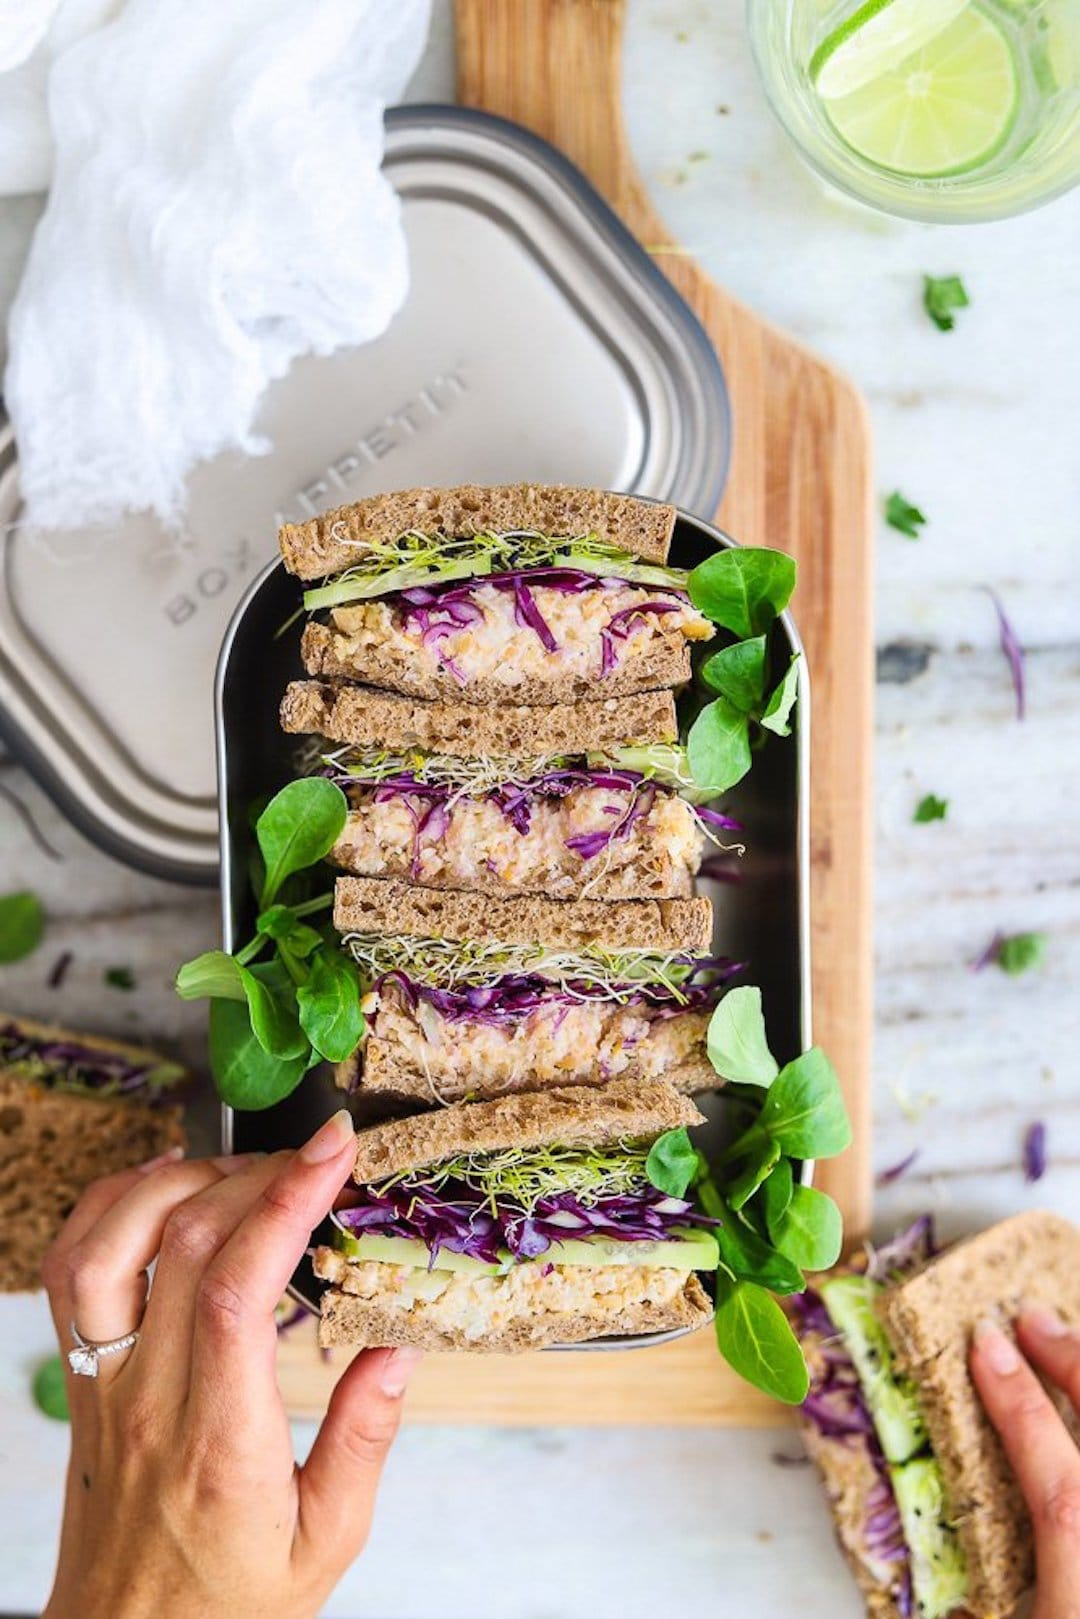 11 Yummy Plant Based Sandwiches - Vegan Chickpea Sandwiches by Two Spoons